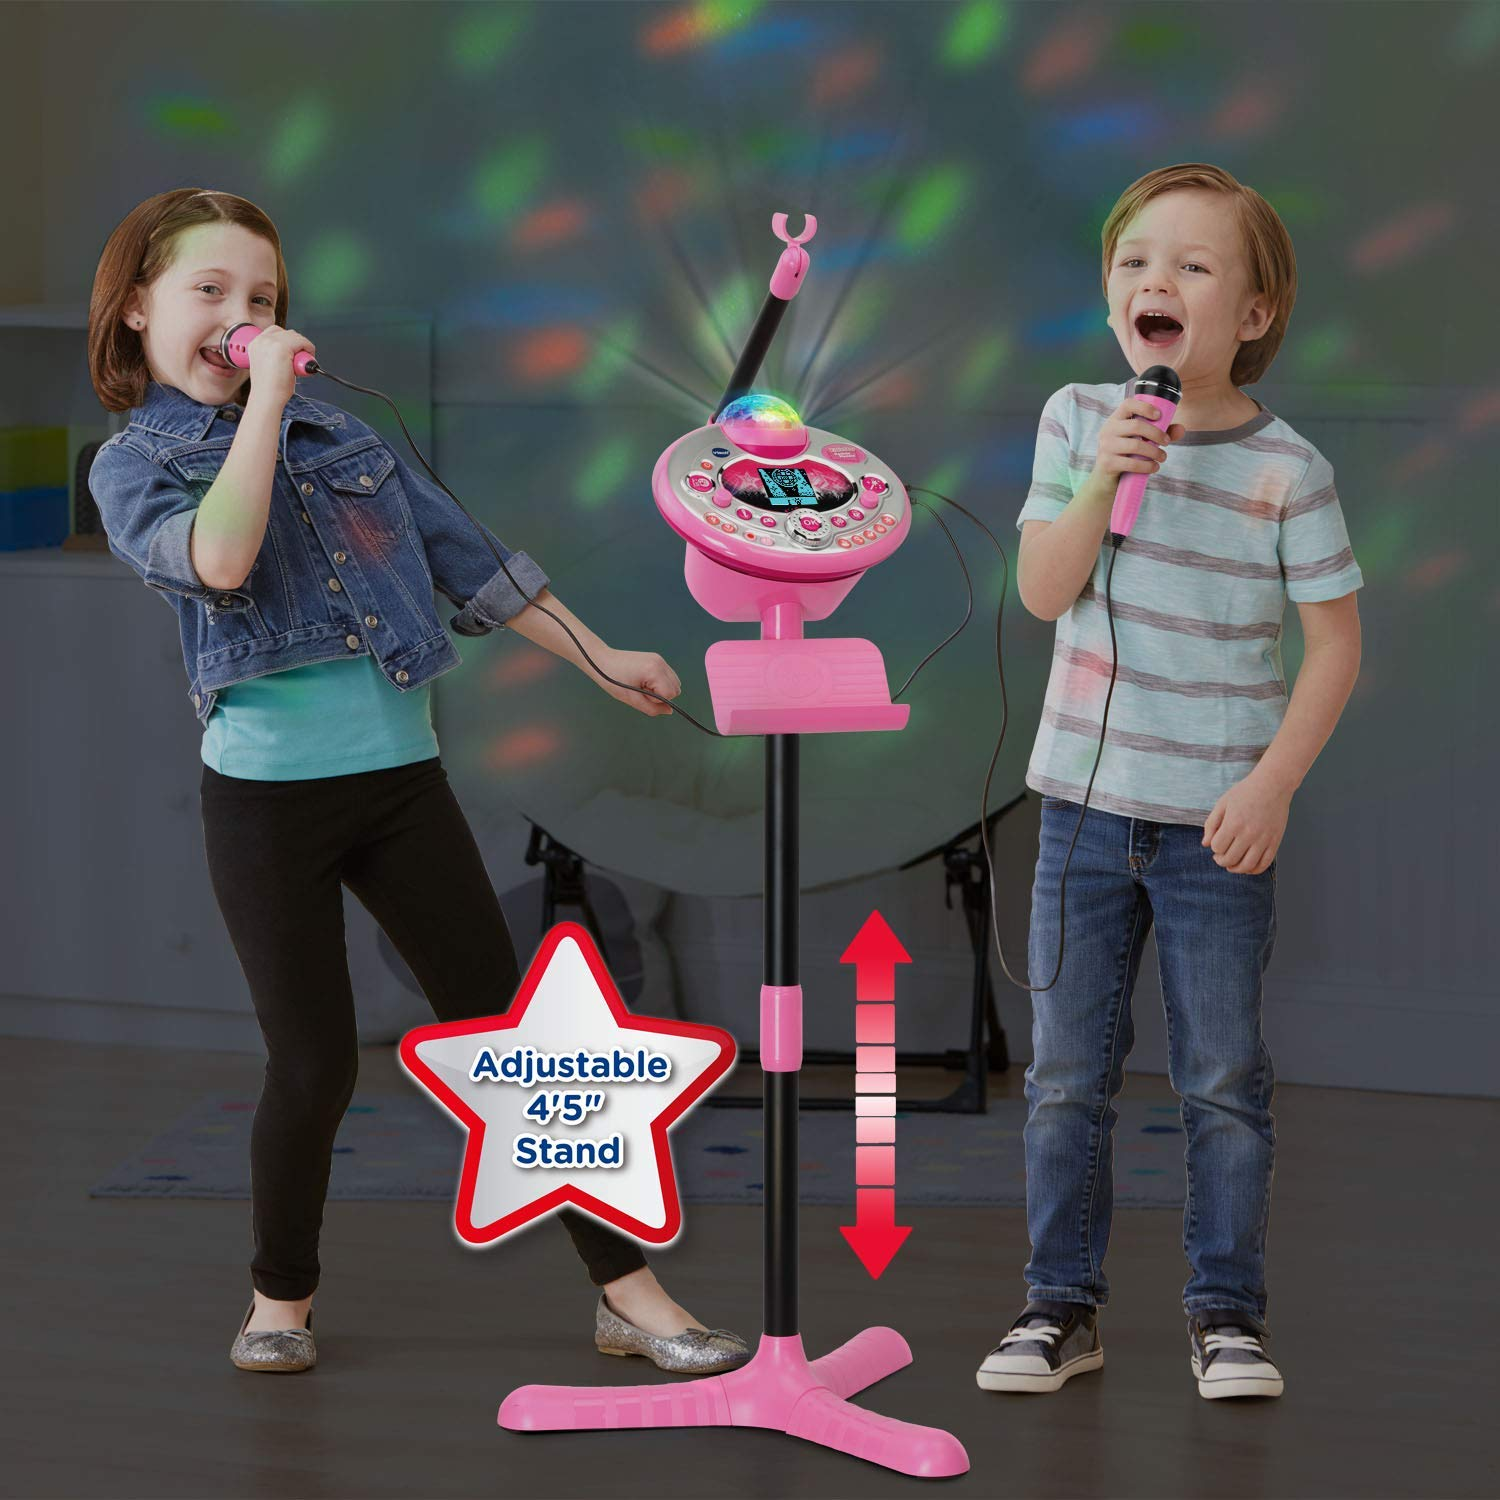 VTech Kidi Star Karaoke System 2 Mics with Mic Stand & AC Adapter, Pink (Renewed) by VTech (Image #6)